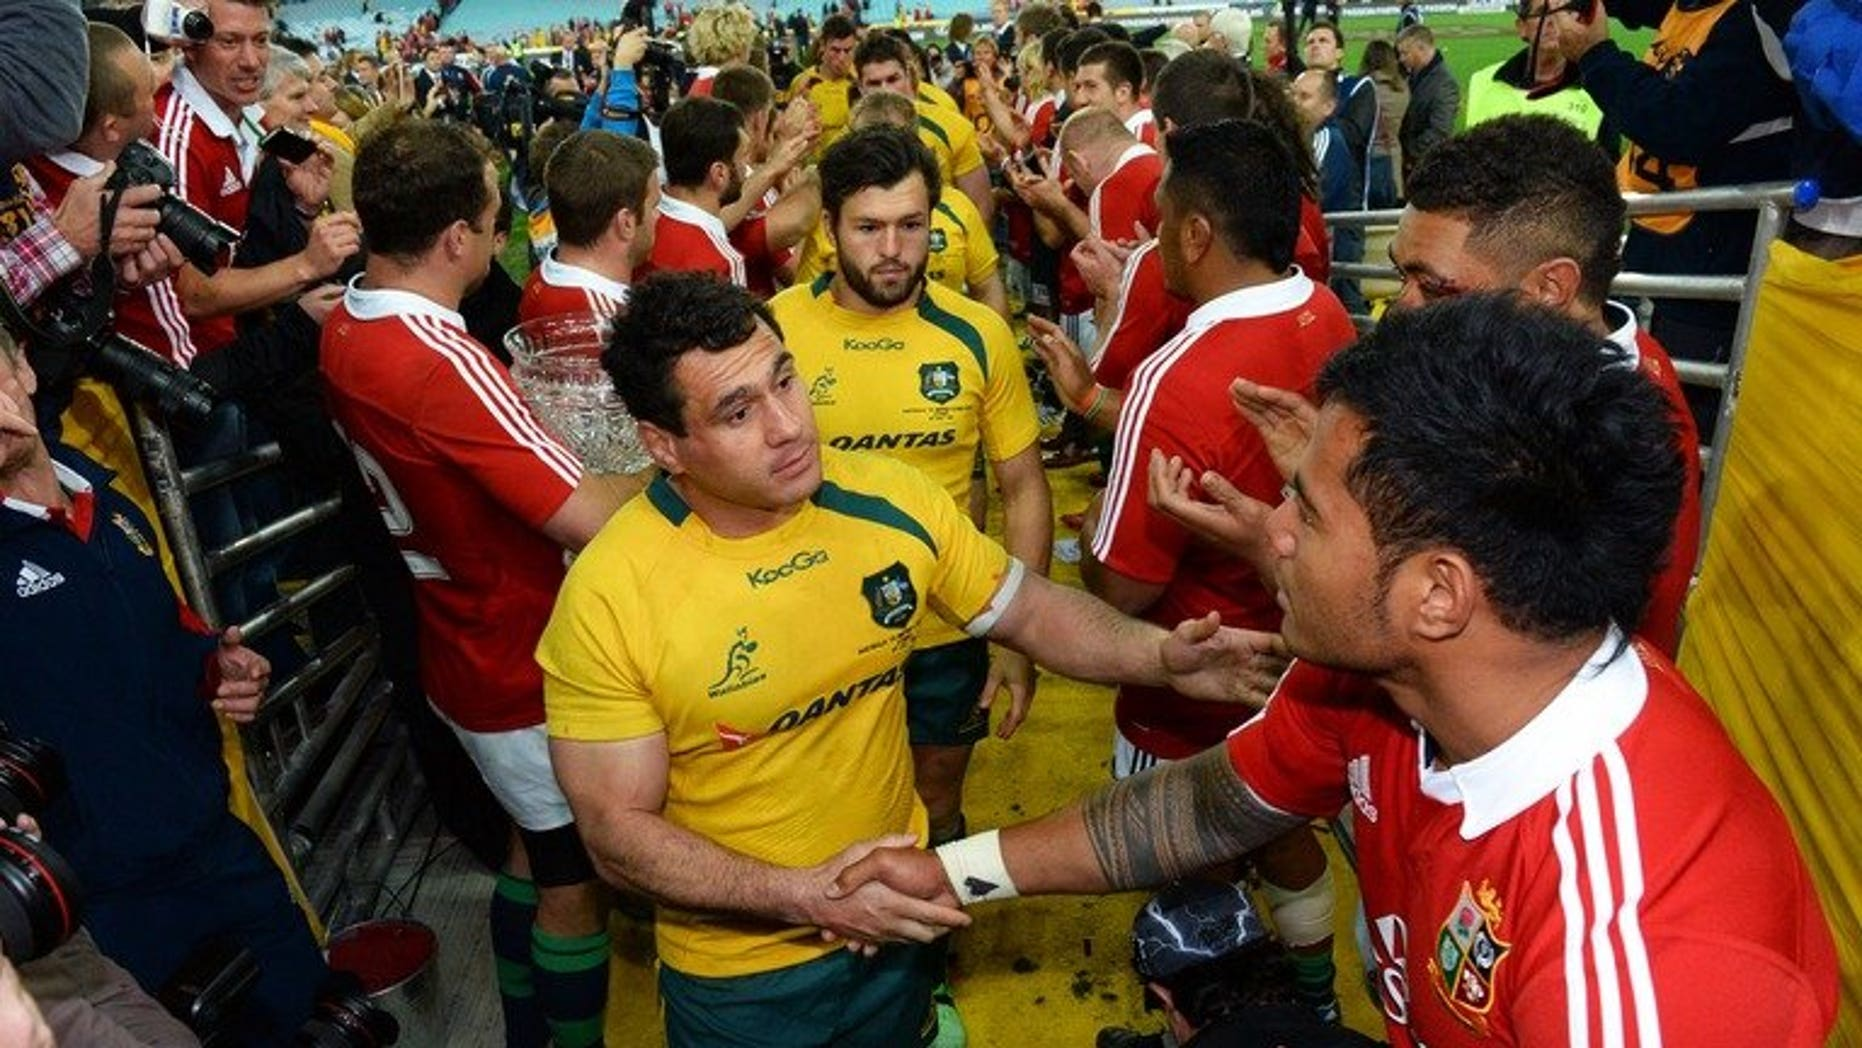 Australian Wallabies flanker George Smith (C) shakes hands with British and Irish Lions centre Manu Tuilagi after the Lions defeated the Wallabies in their third Test, match played in Sydney on July 6, 2013. The Wallabies may have lost the series but Australia did very well financially out of the recent rugby tour by the Lions, a tourism industry body said on Friday.